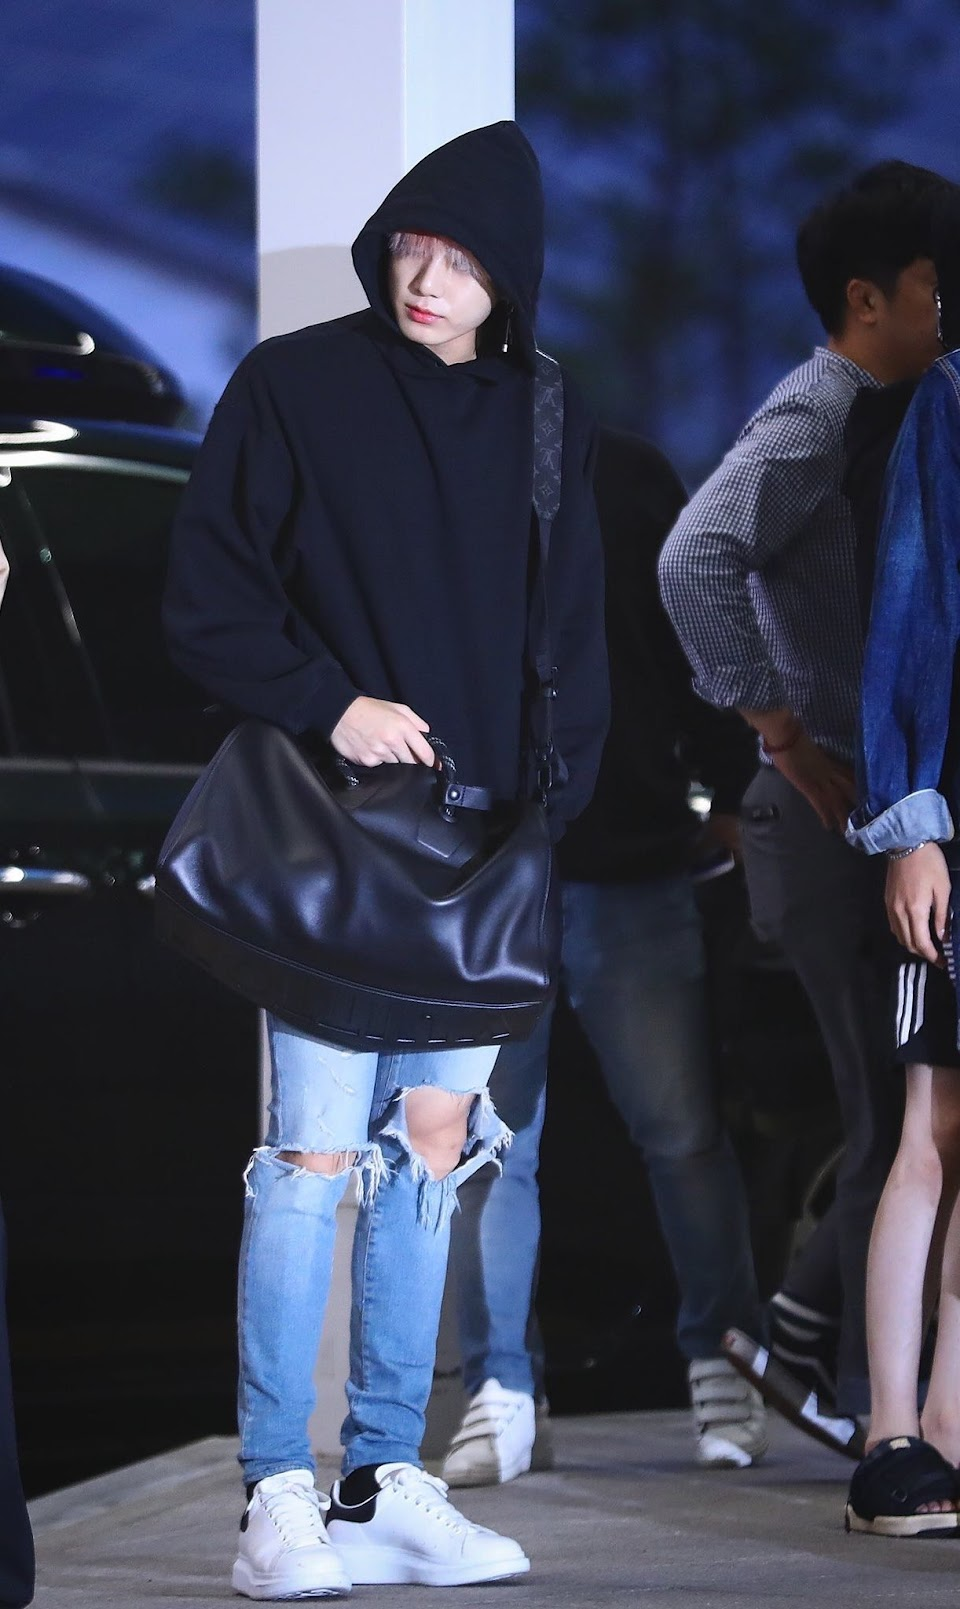 jungkookrippedjeans_3a